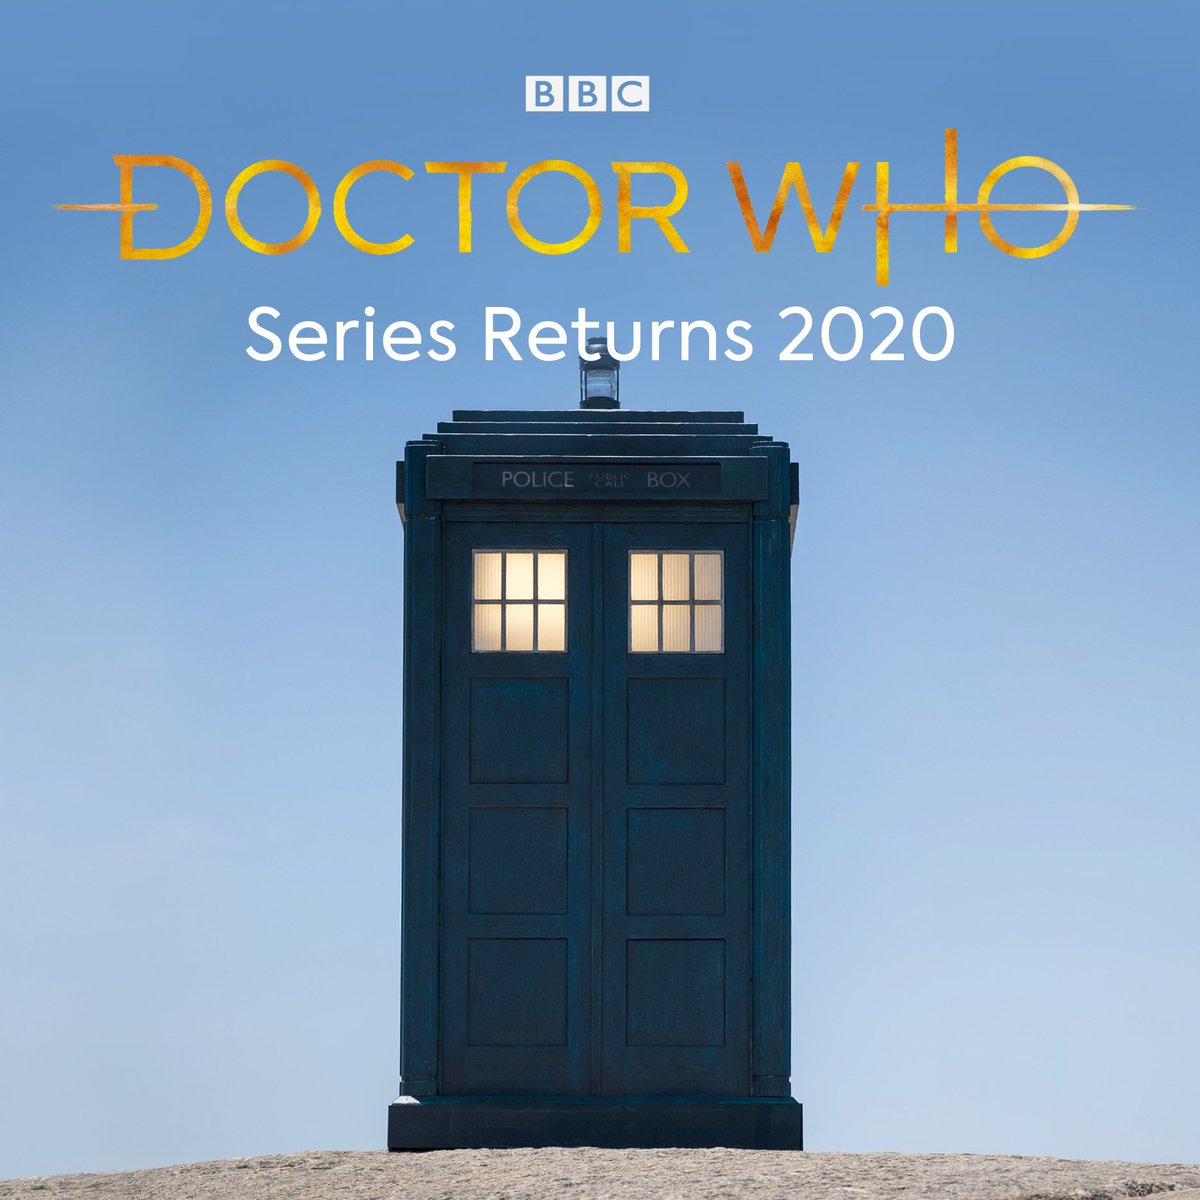 Doctor Who Officially Renewed for Season 12, Jodie Whittaker Set to Return